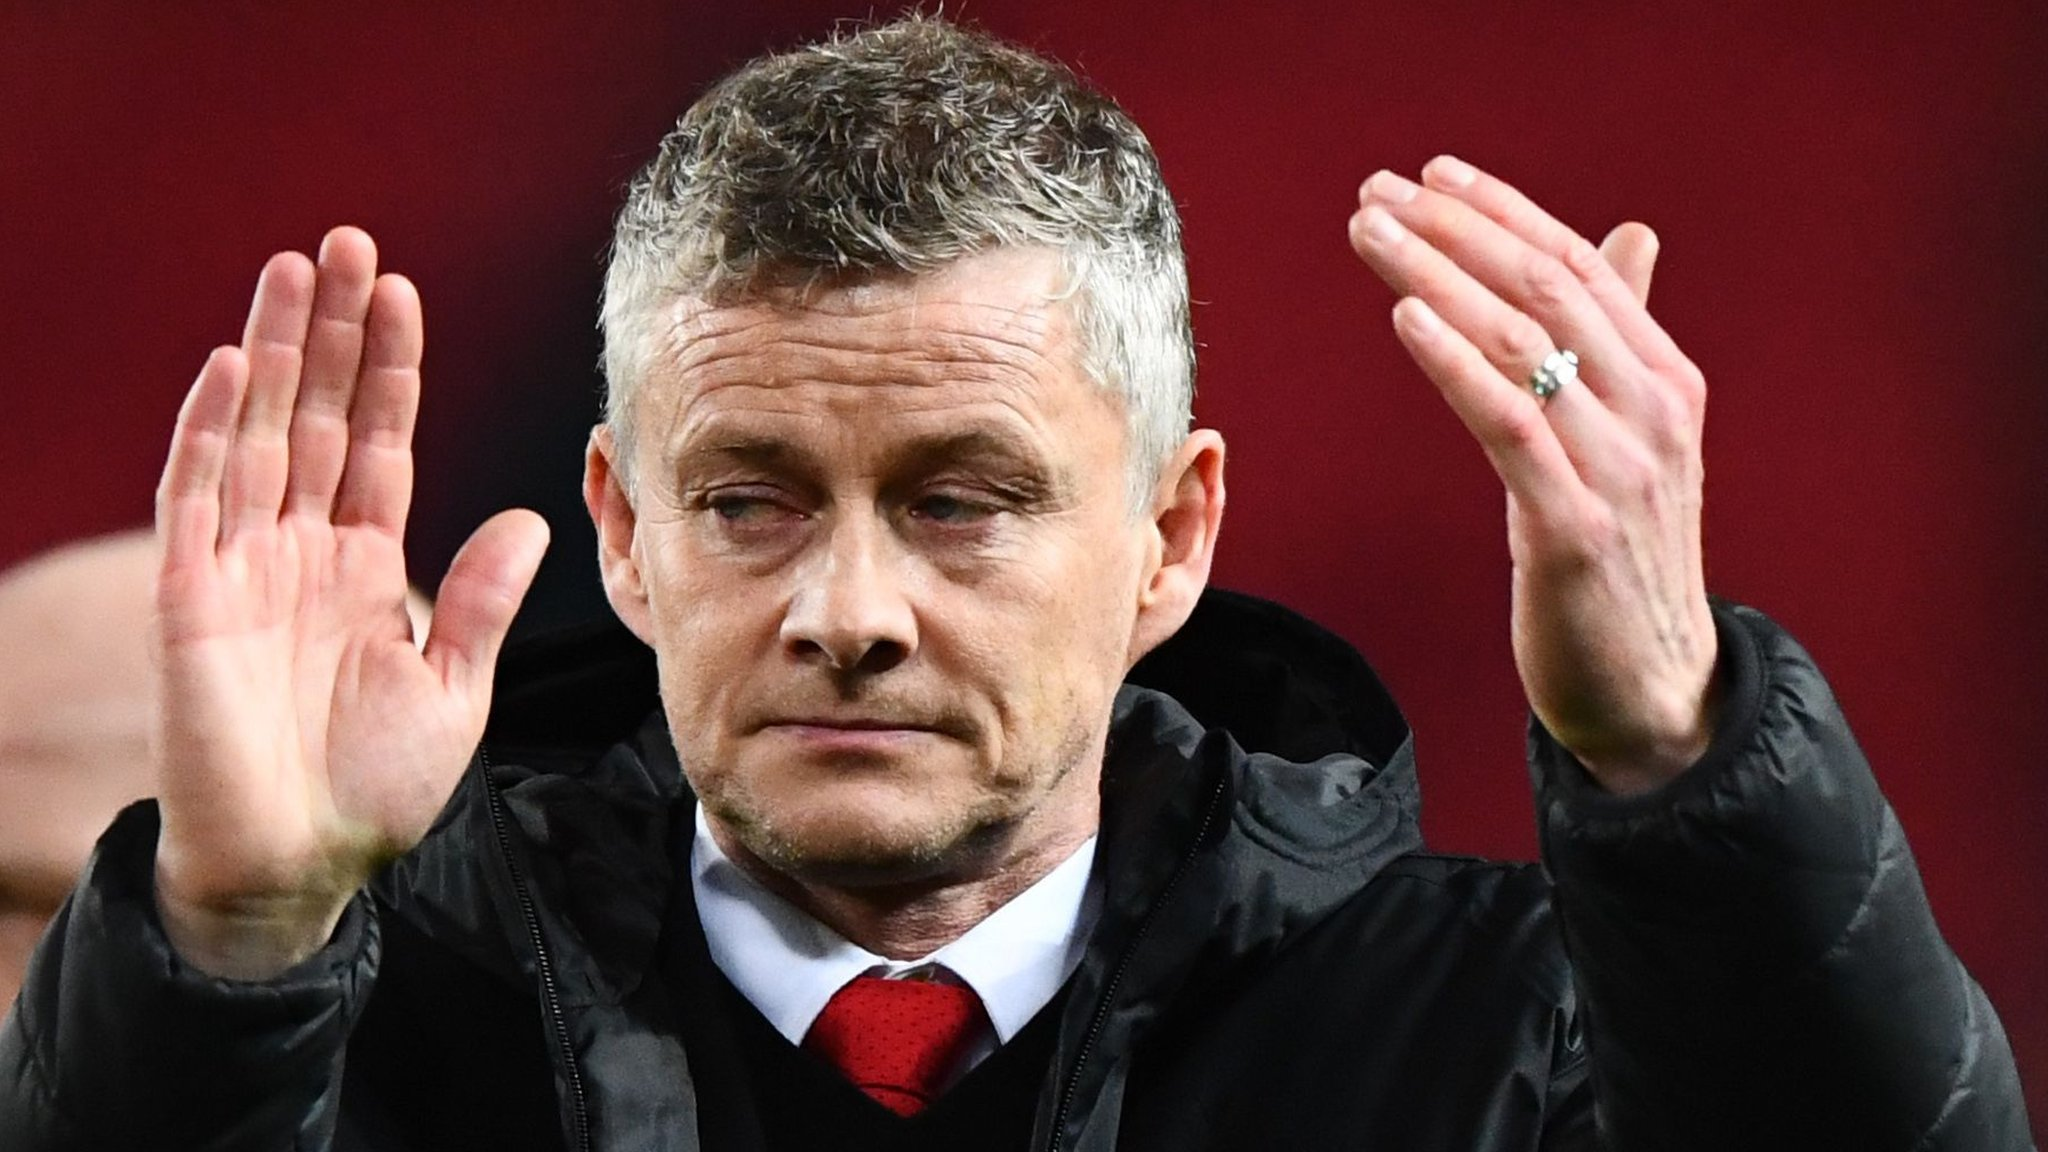 Man Utd 0-2 Paris St-Germain: Defeat down to lack of quality, not Ole Gunnar Solskjaer's ability - Phil Neville analysis